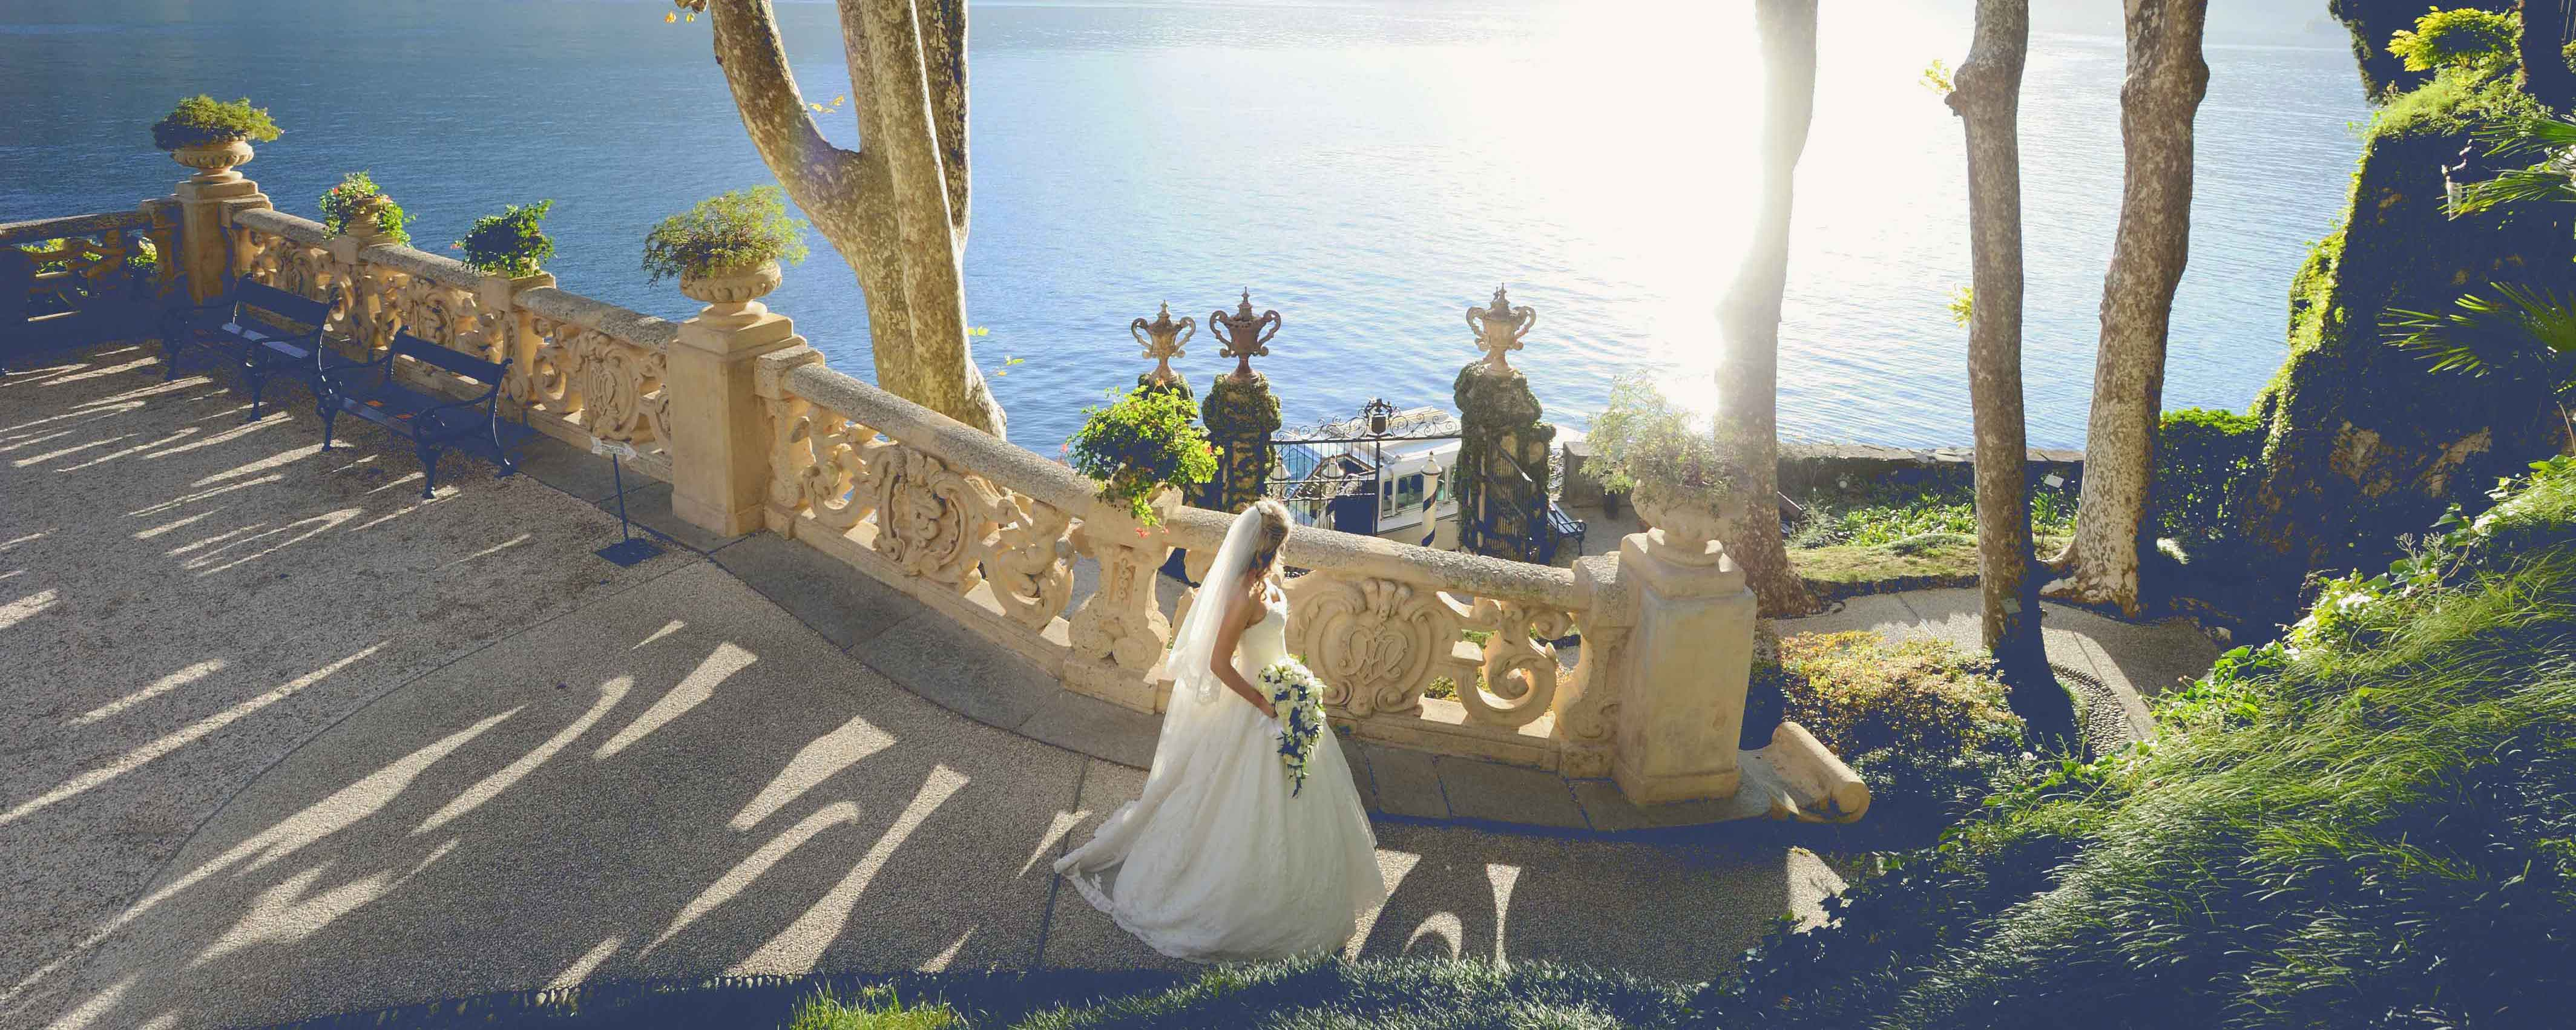 Lake Villas Wedding Venues